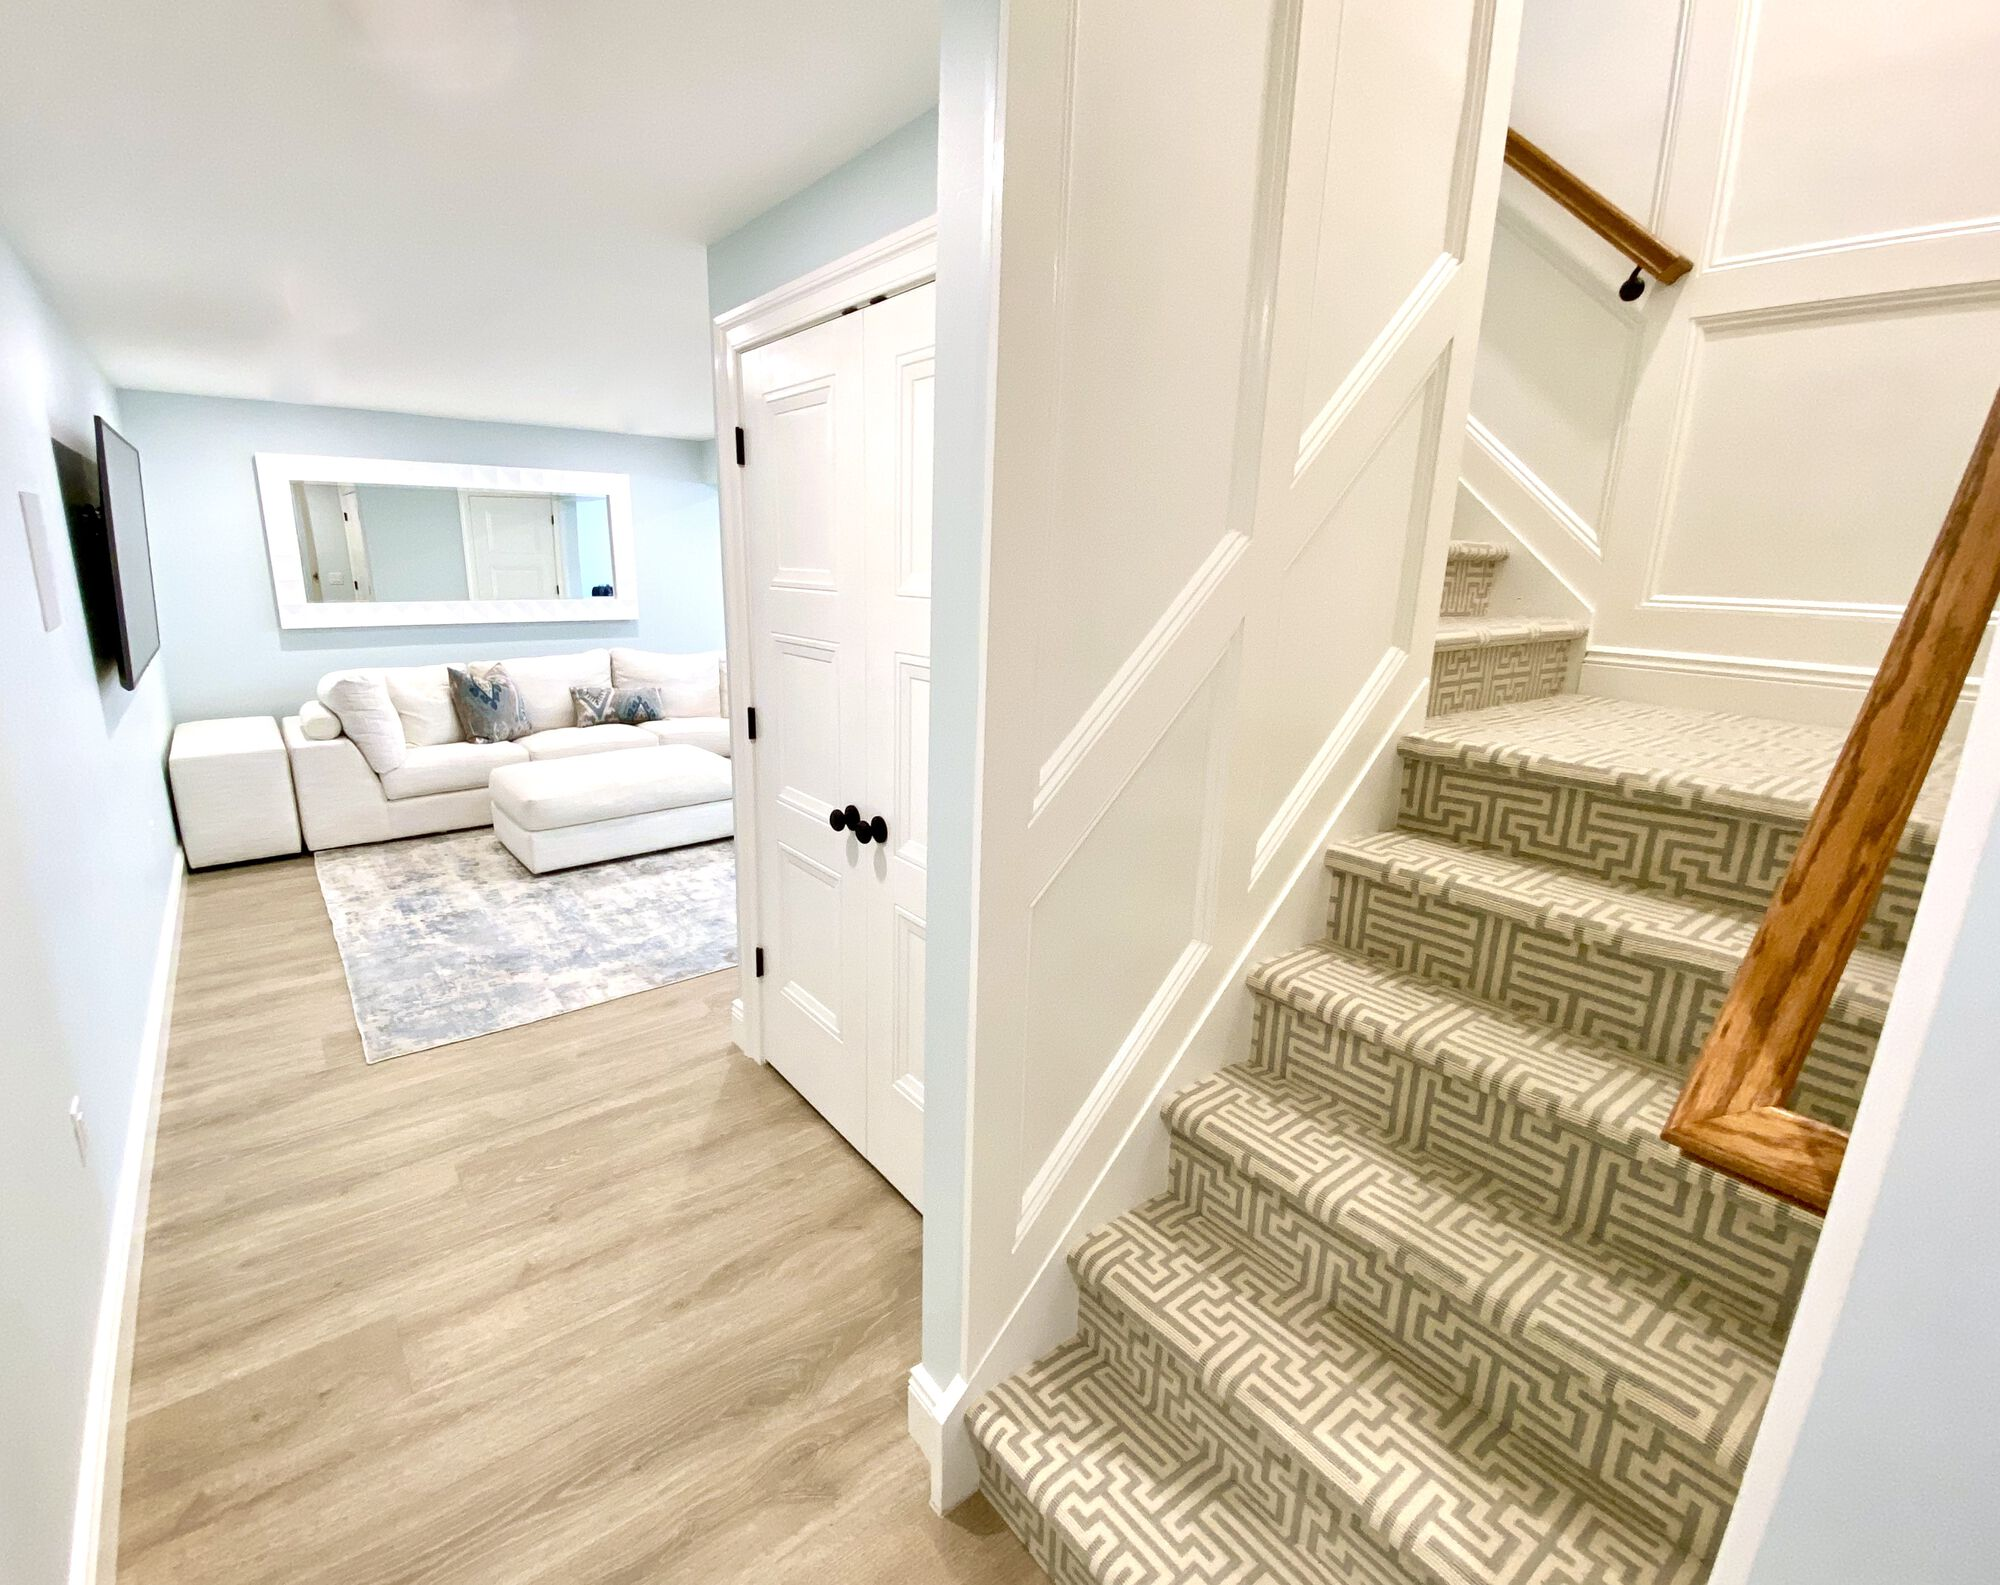 Basement Remodeling with Steel Beam Install ed to Remove a Column, Custom Trim and Paneling, Luxury Vinyl Plank Flooring, LED Lighting, Laundry _ Full Bath in Sparta, Sussex County NJ